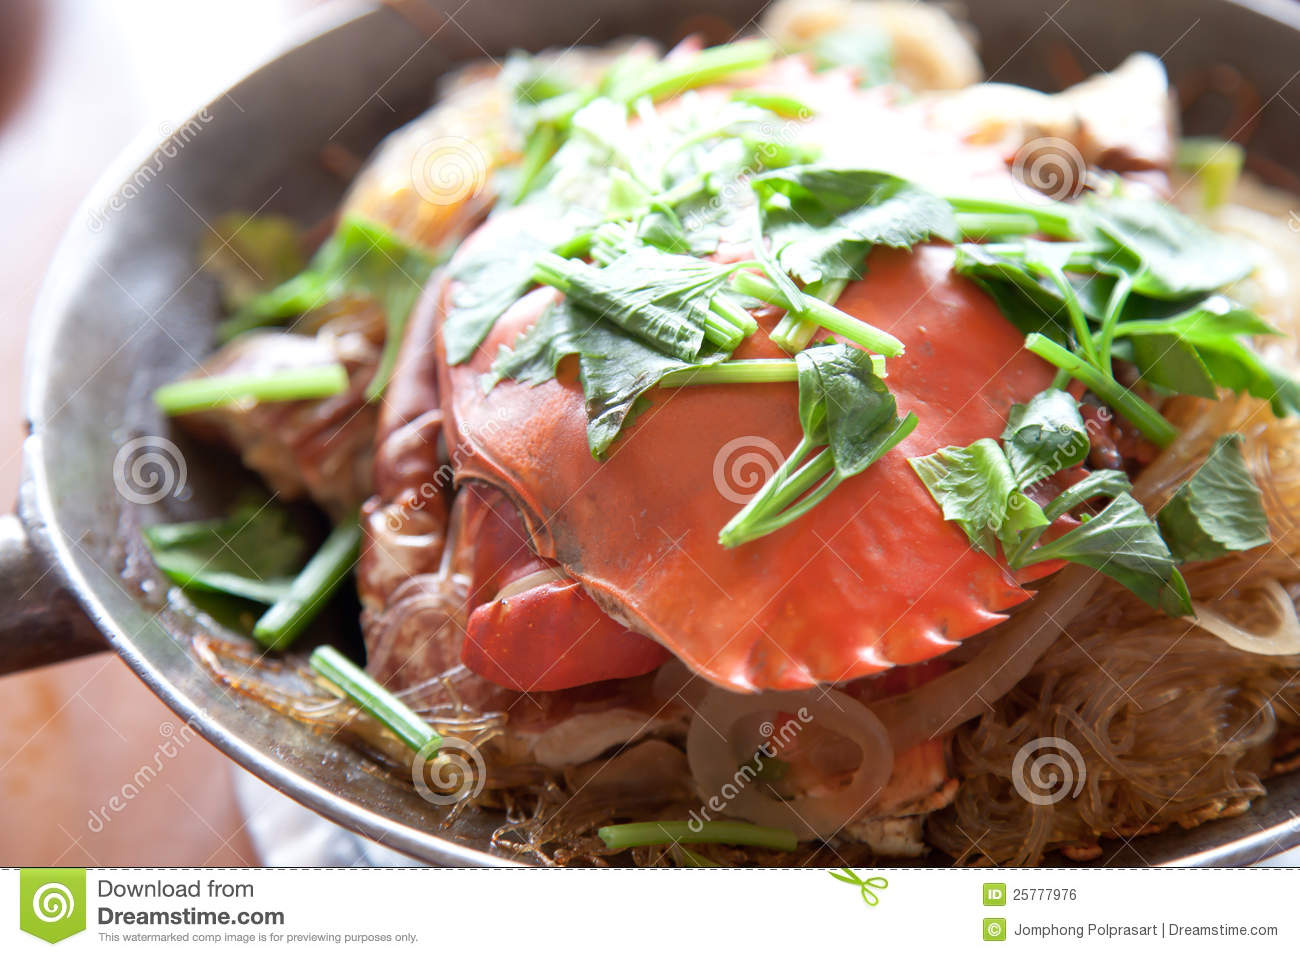 Crab And Glass Noodles Royalty Free Stock Image - Image: 25777976